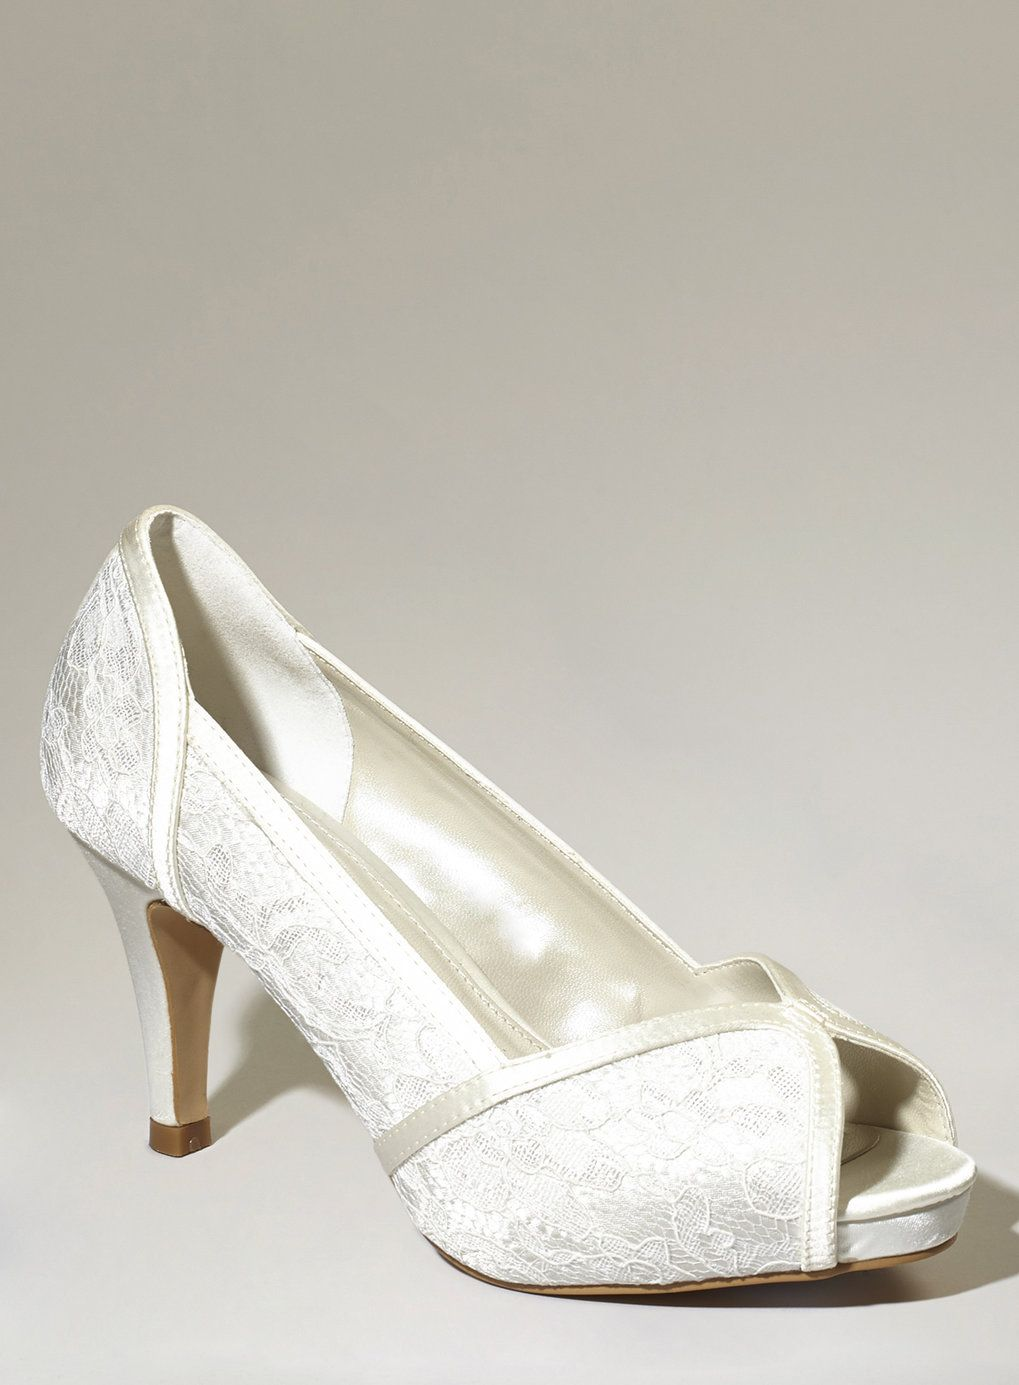 Ivory Fashion Wide Fit Da Vinci Lace P Toe Courts Bhs Court Heelssatin Shoesbridal